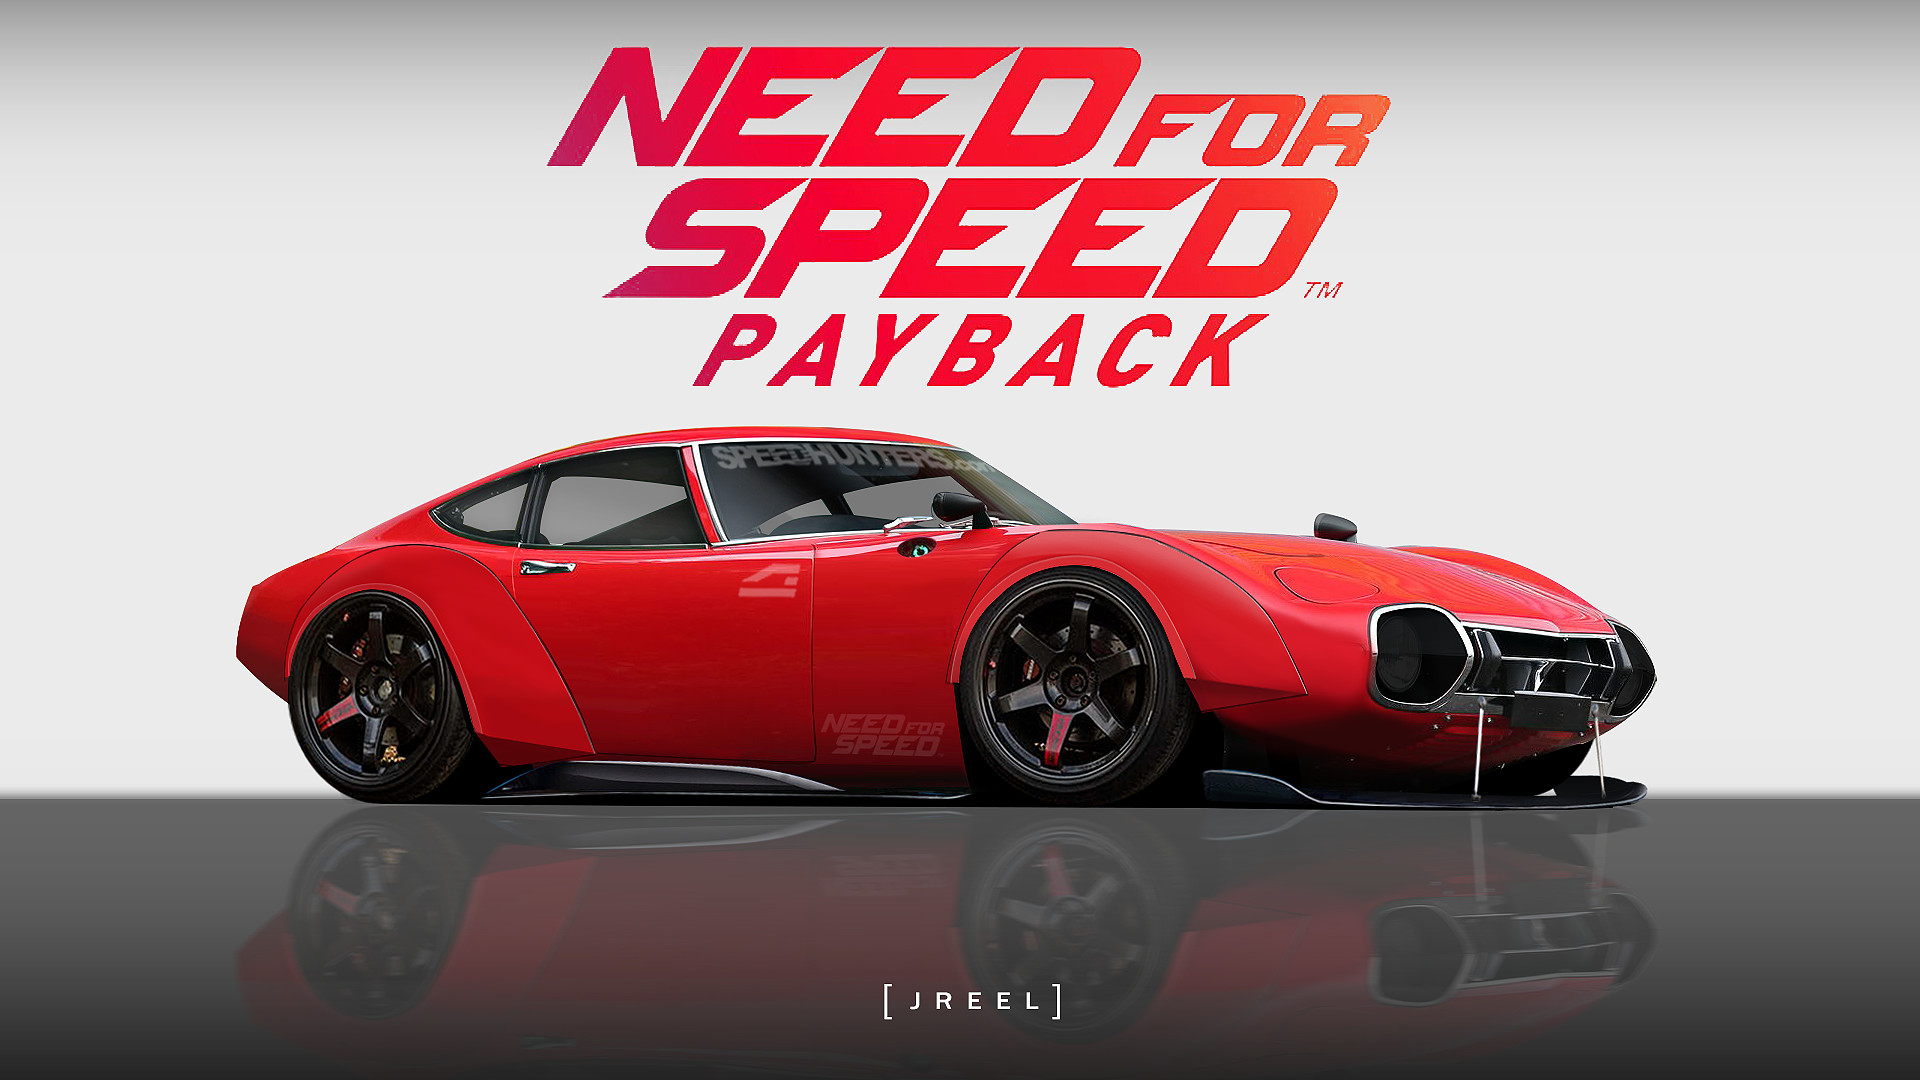 download need for speed nfs payback wallpapers read games reviews play online games. Black Bedroom Furniture Sets. Home Design Ideas